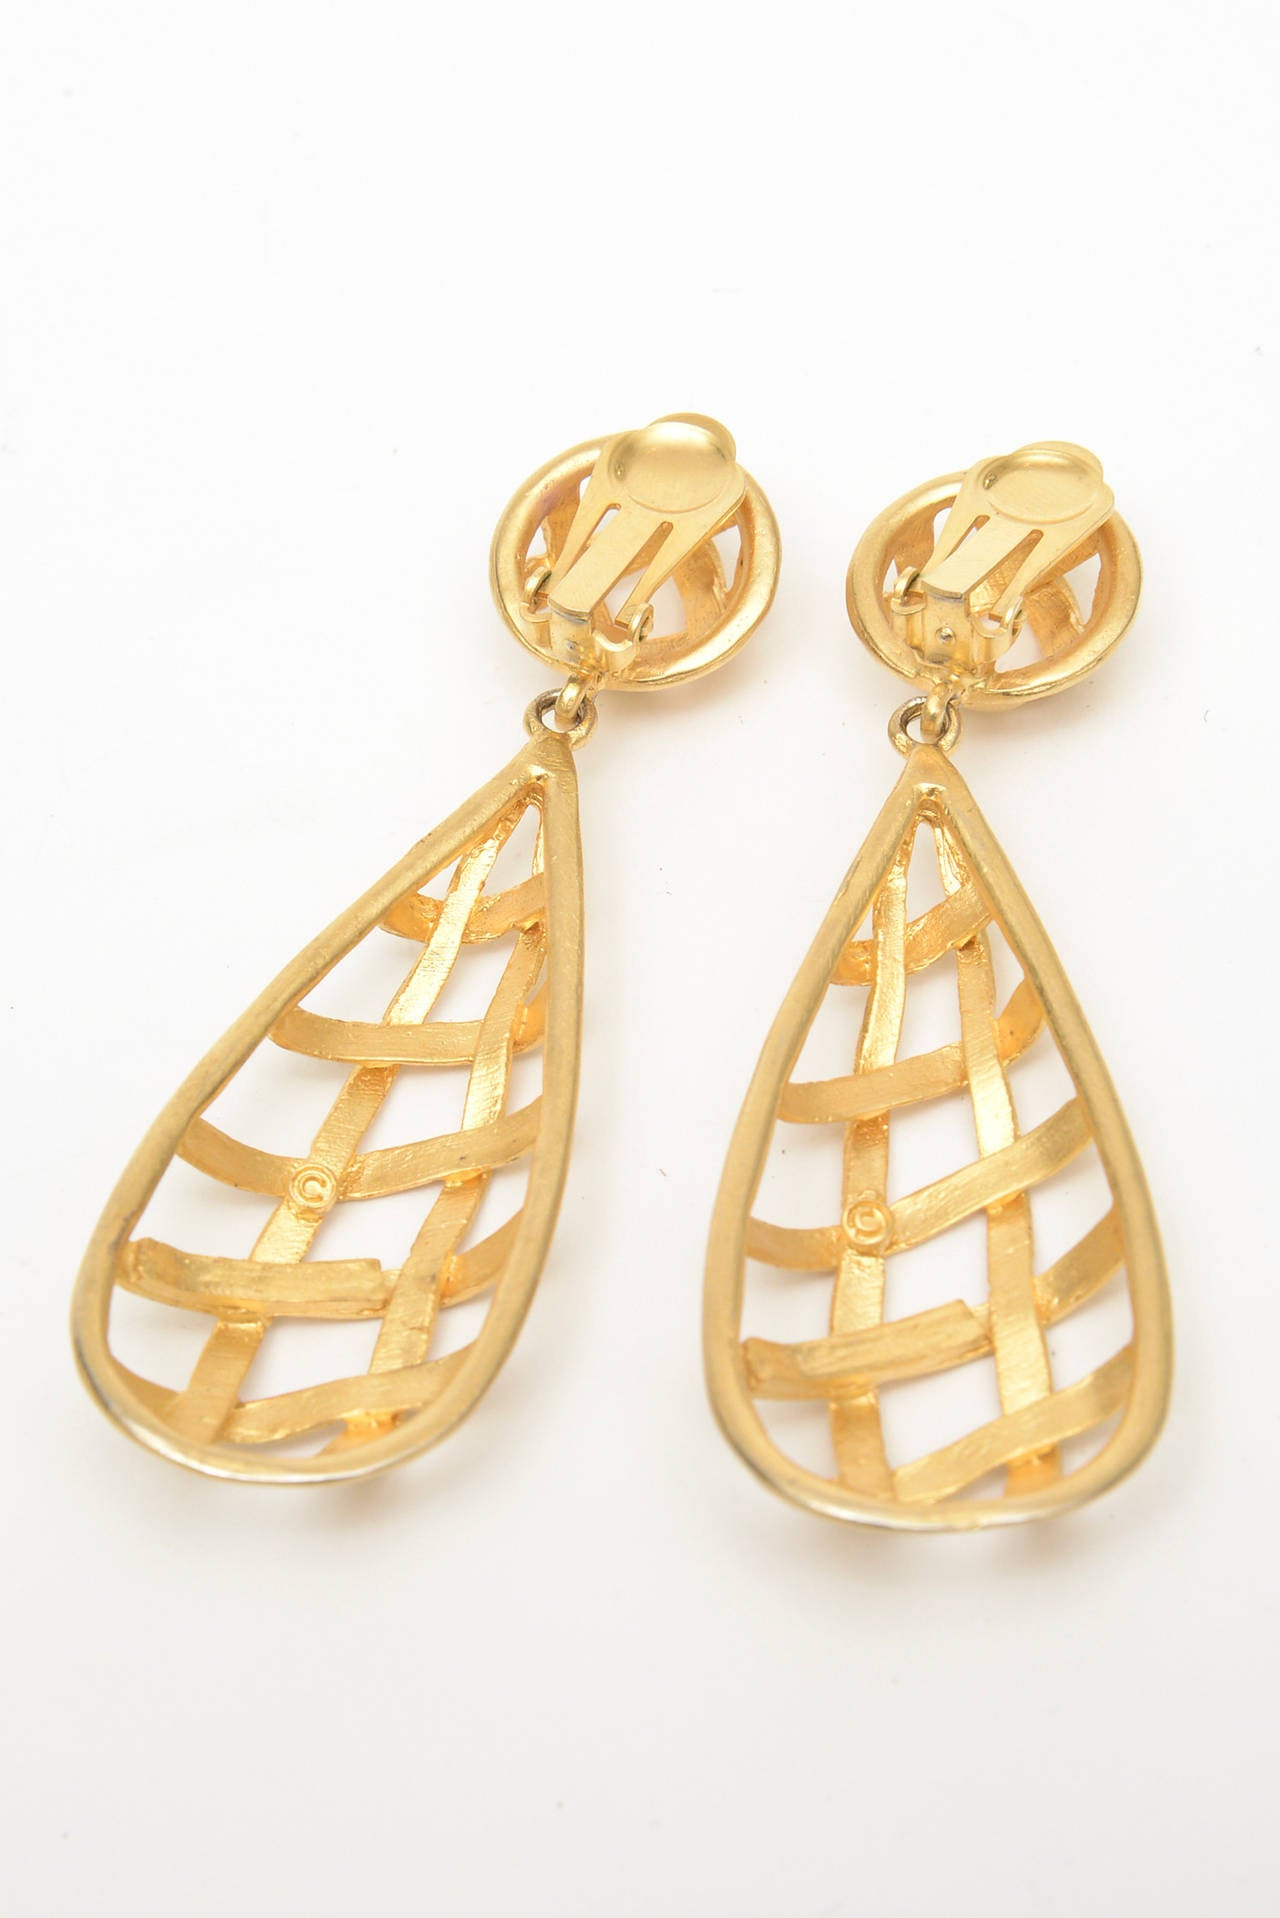 Pair of Gold Plated Criss Cross Cage Dangle Earrings For Sale 3